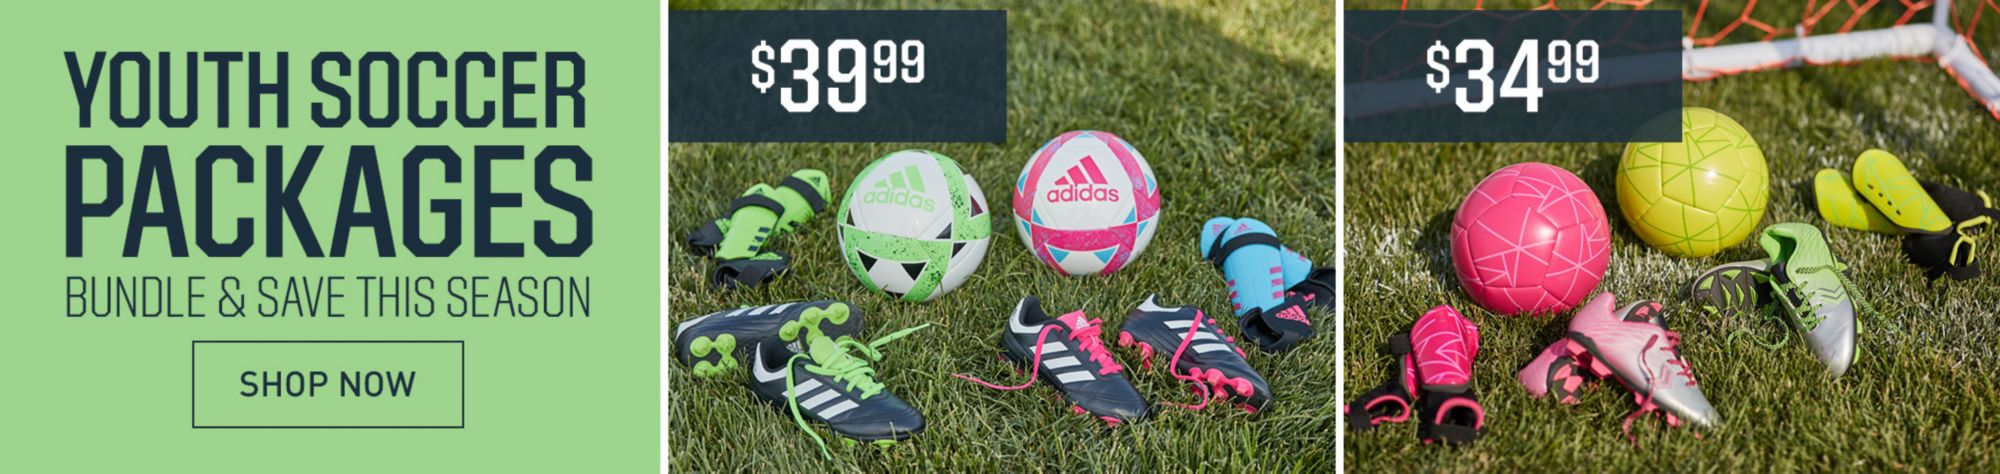 YOUTH SOCCER PACKAGES  Bundle and Save this Soccer Season